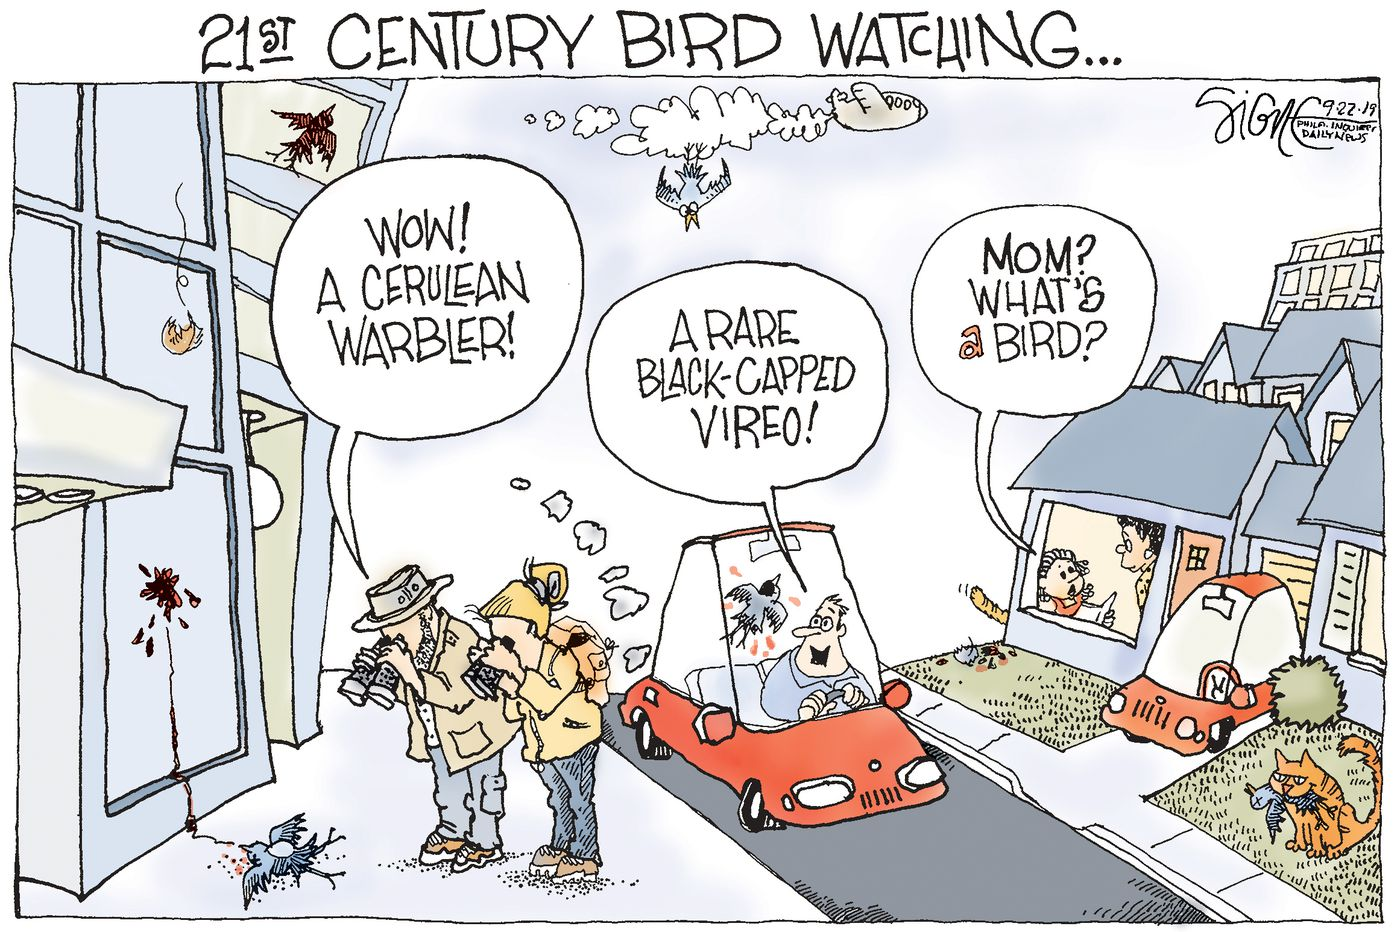 Political Cartoon: Watching birds vanish in humans' nature